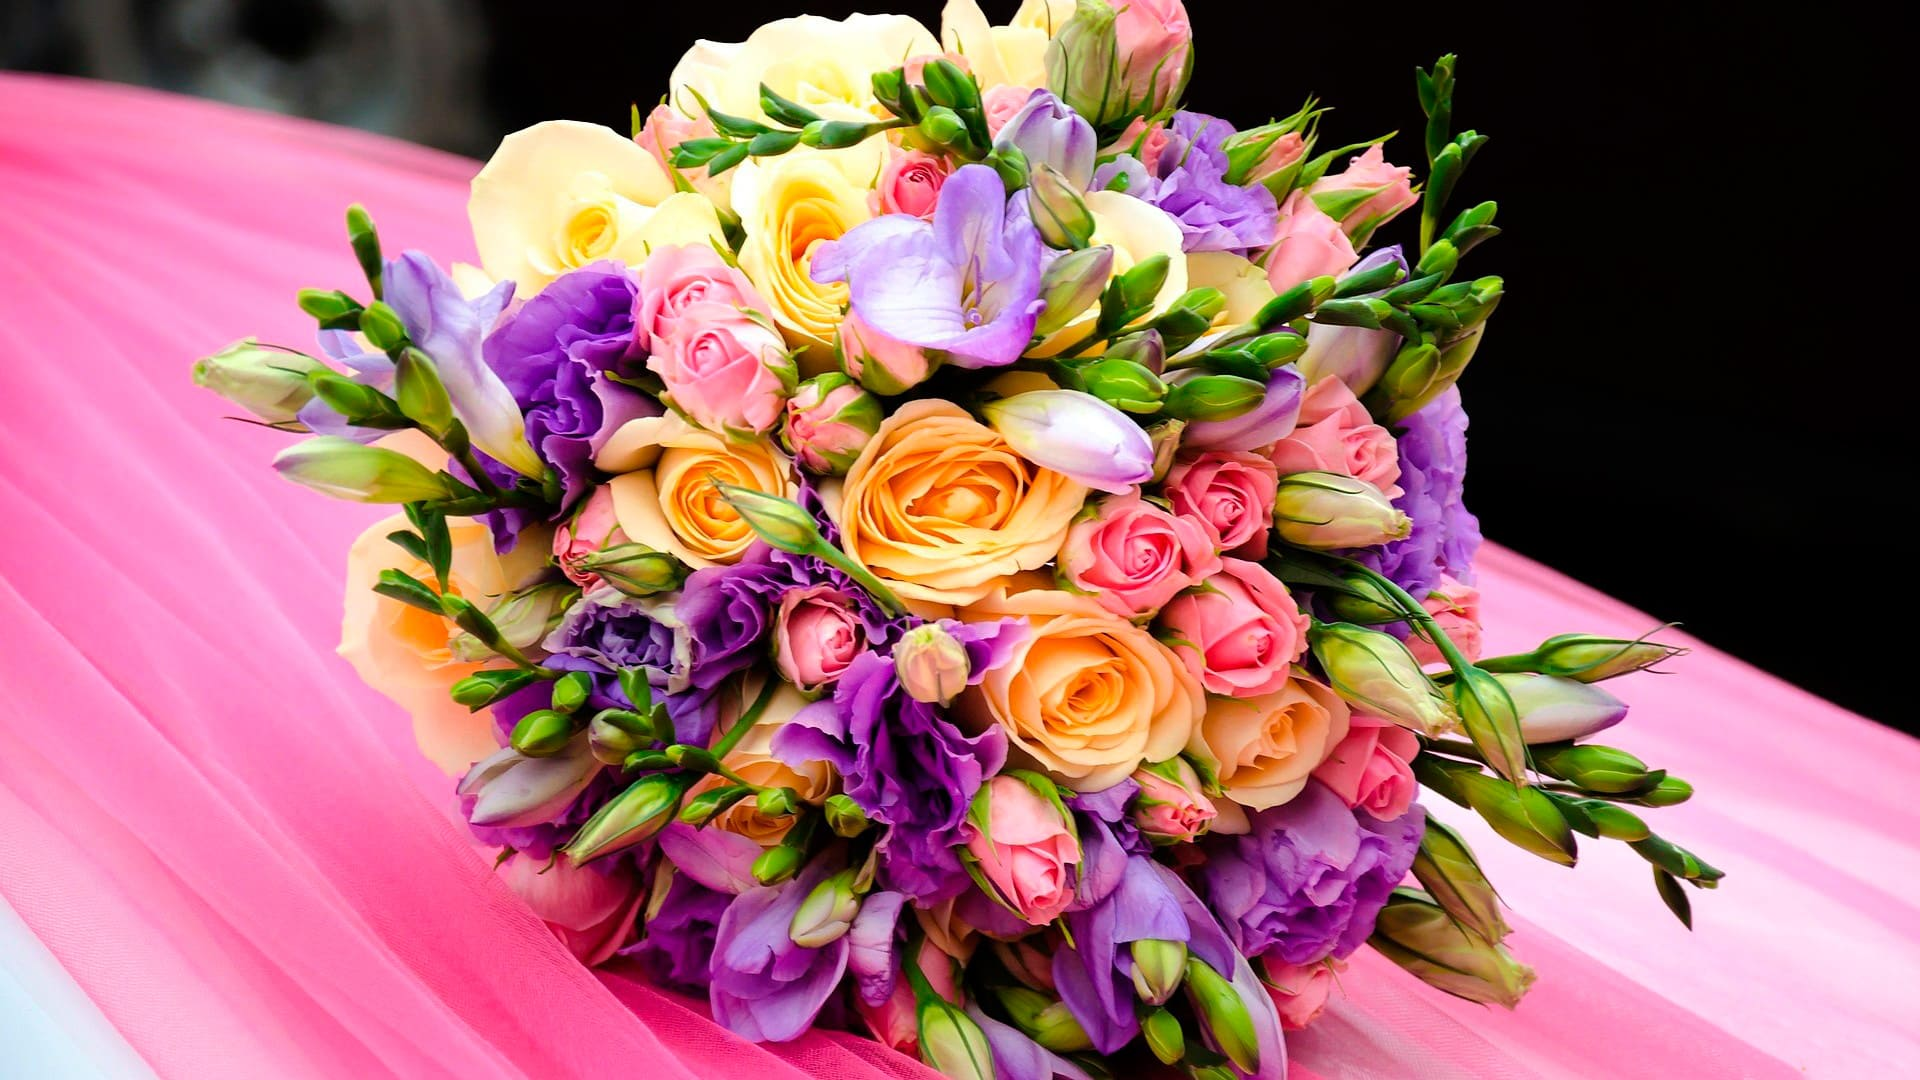 Pictures of beautiful bouquets of flowers 80 pieces of stunning photos izmirmasajfo